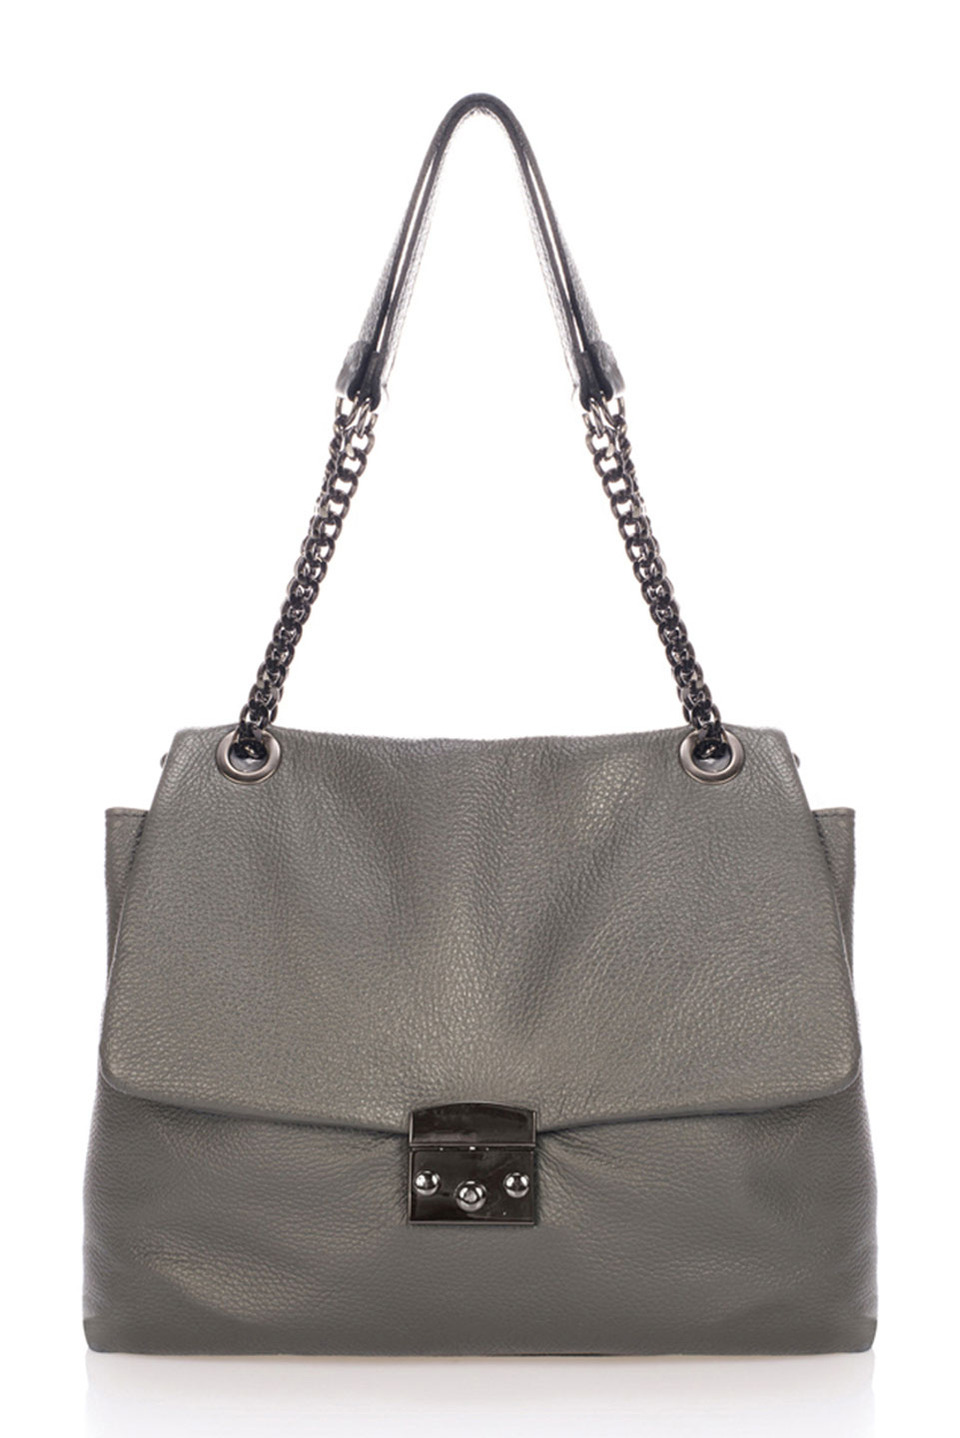 Coco Top Handle in Gray